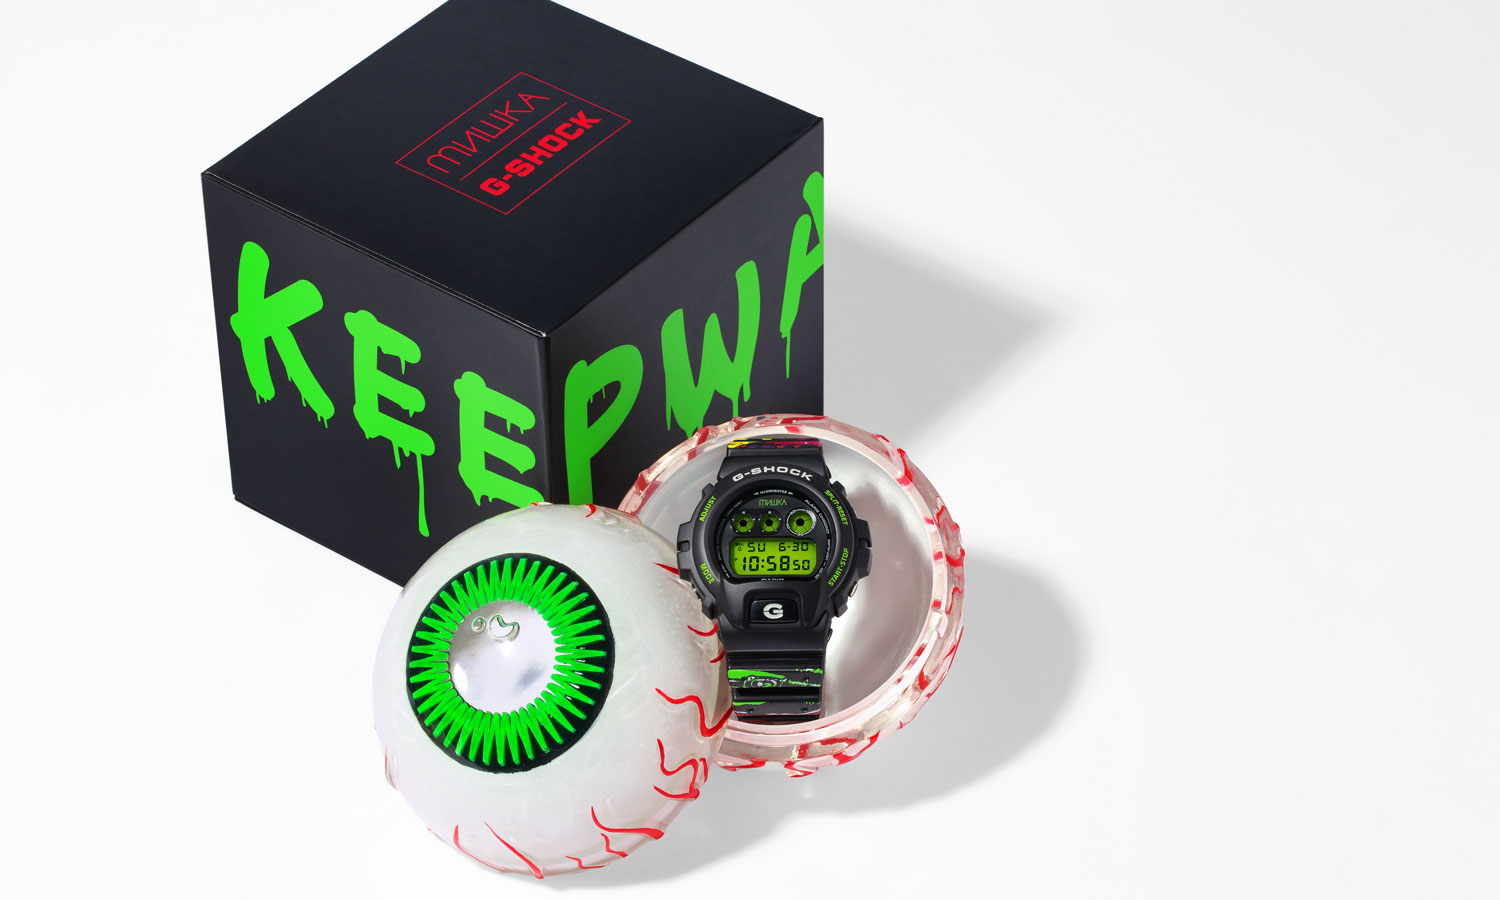 KEEP WATCH!G-SHOCK x MISHKA 合作款腕表公布